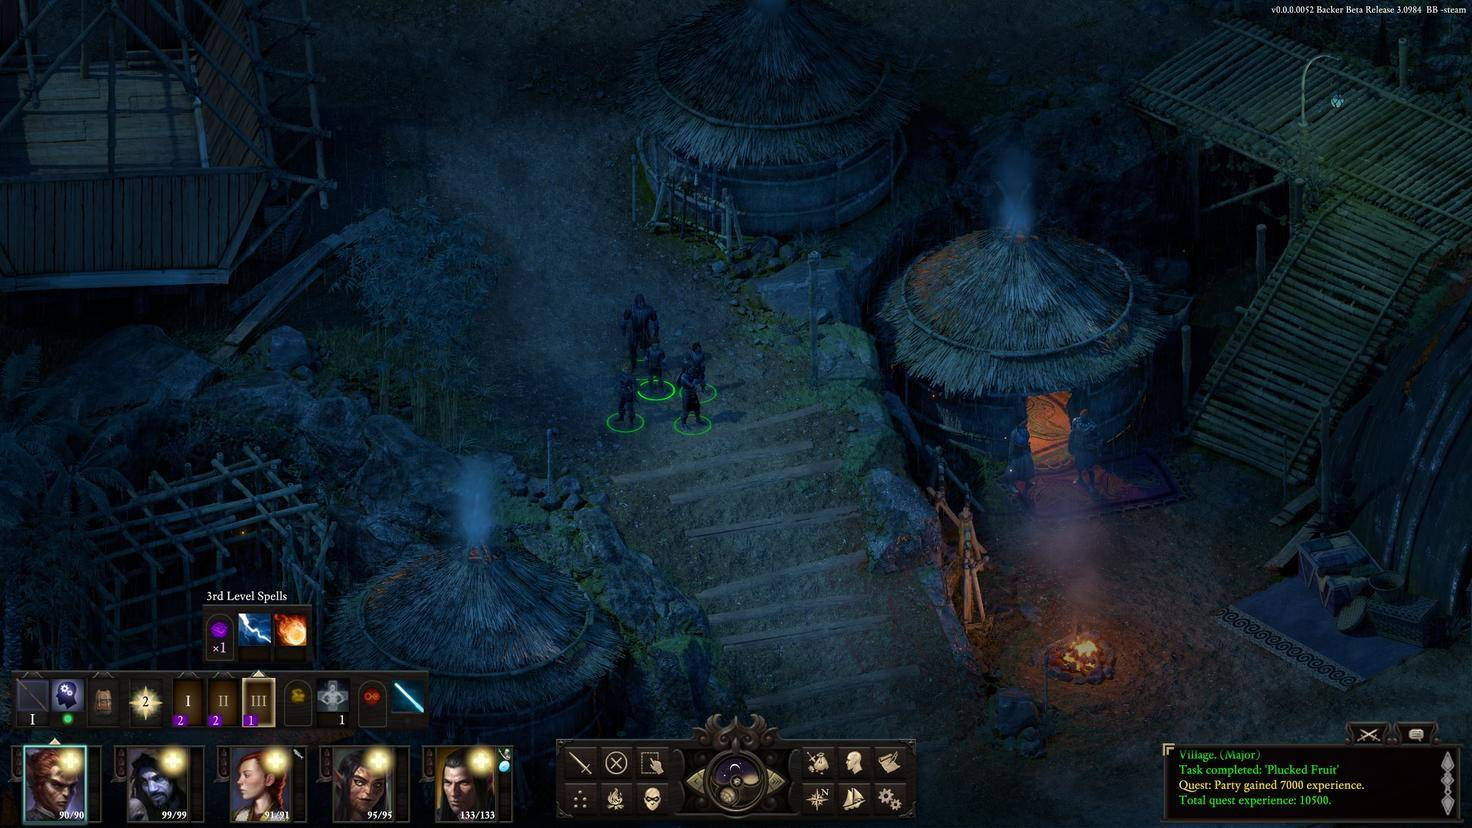 Pillars-of-Eternity-2-Deadfire-4